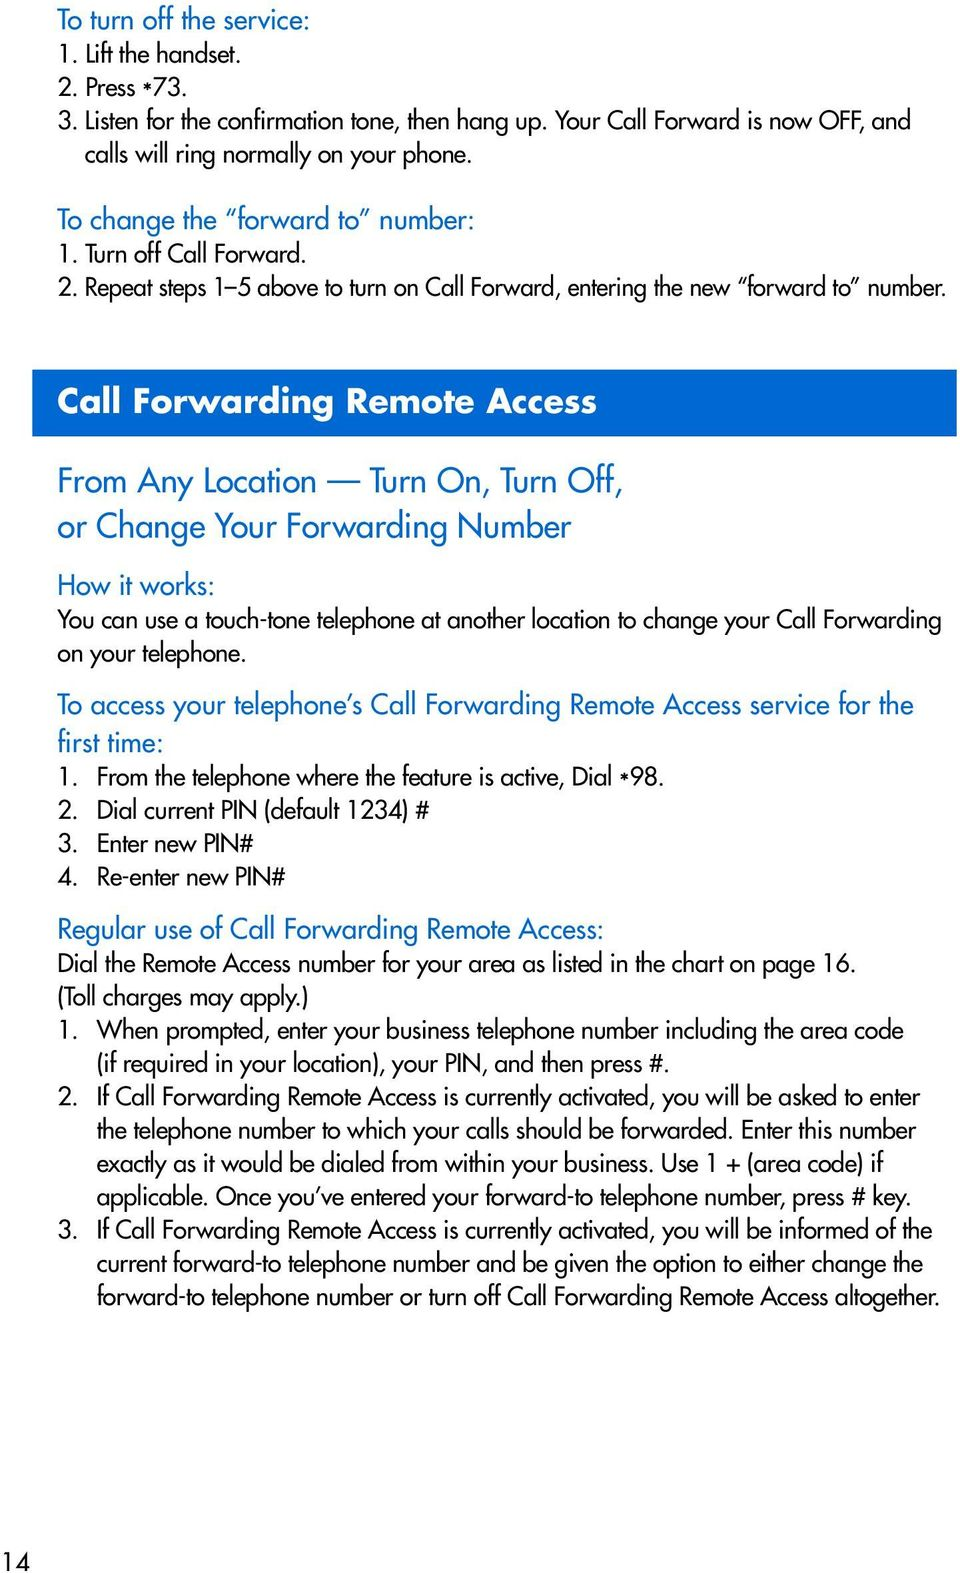 Call Forwarding Remote Access From Any Location Turn On, Turn Off, or Change Your Forwarding Number You can use a touch-tone telephone at another location to change your Call Forwarding on your